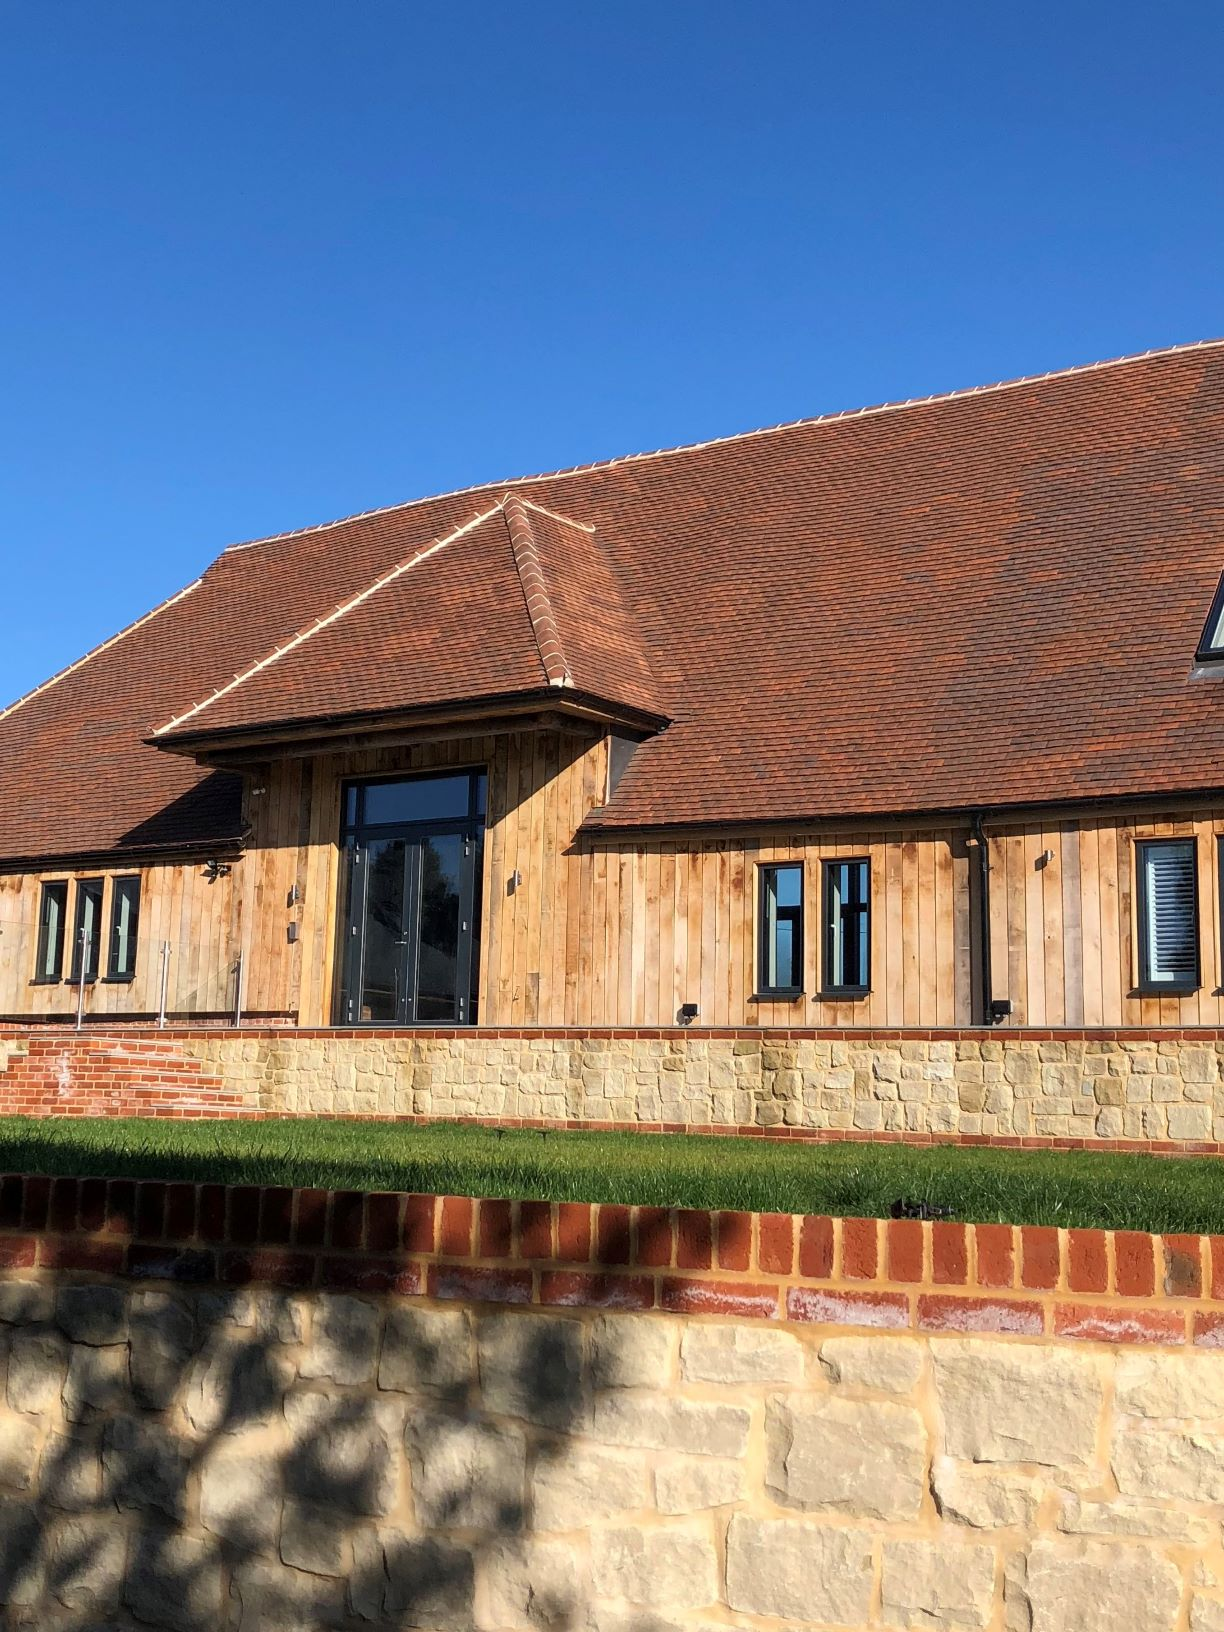 West Court Barn, Hampshire